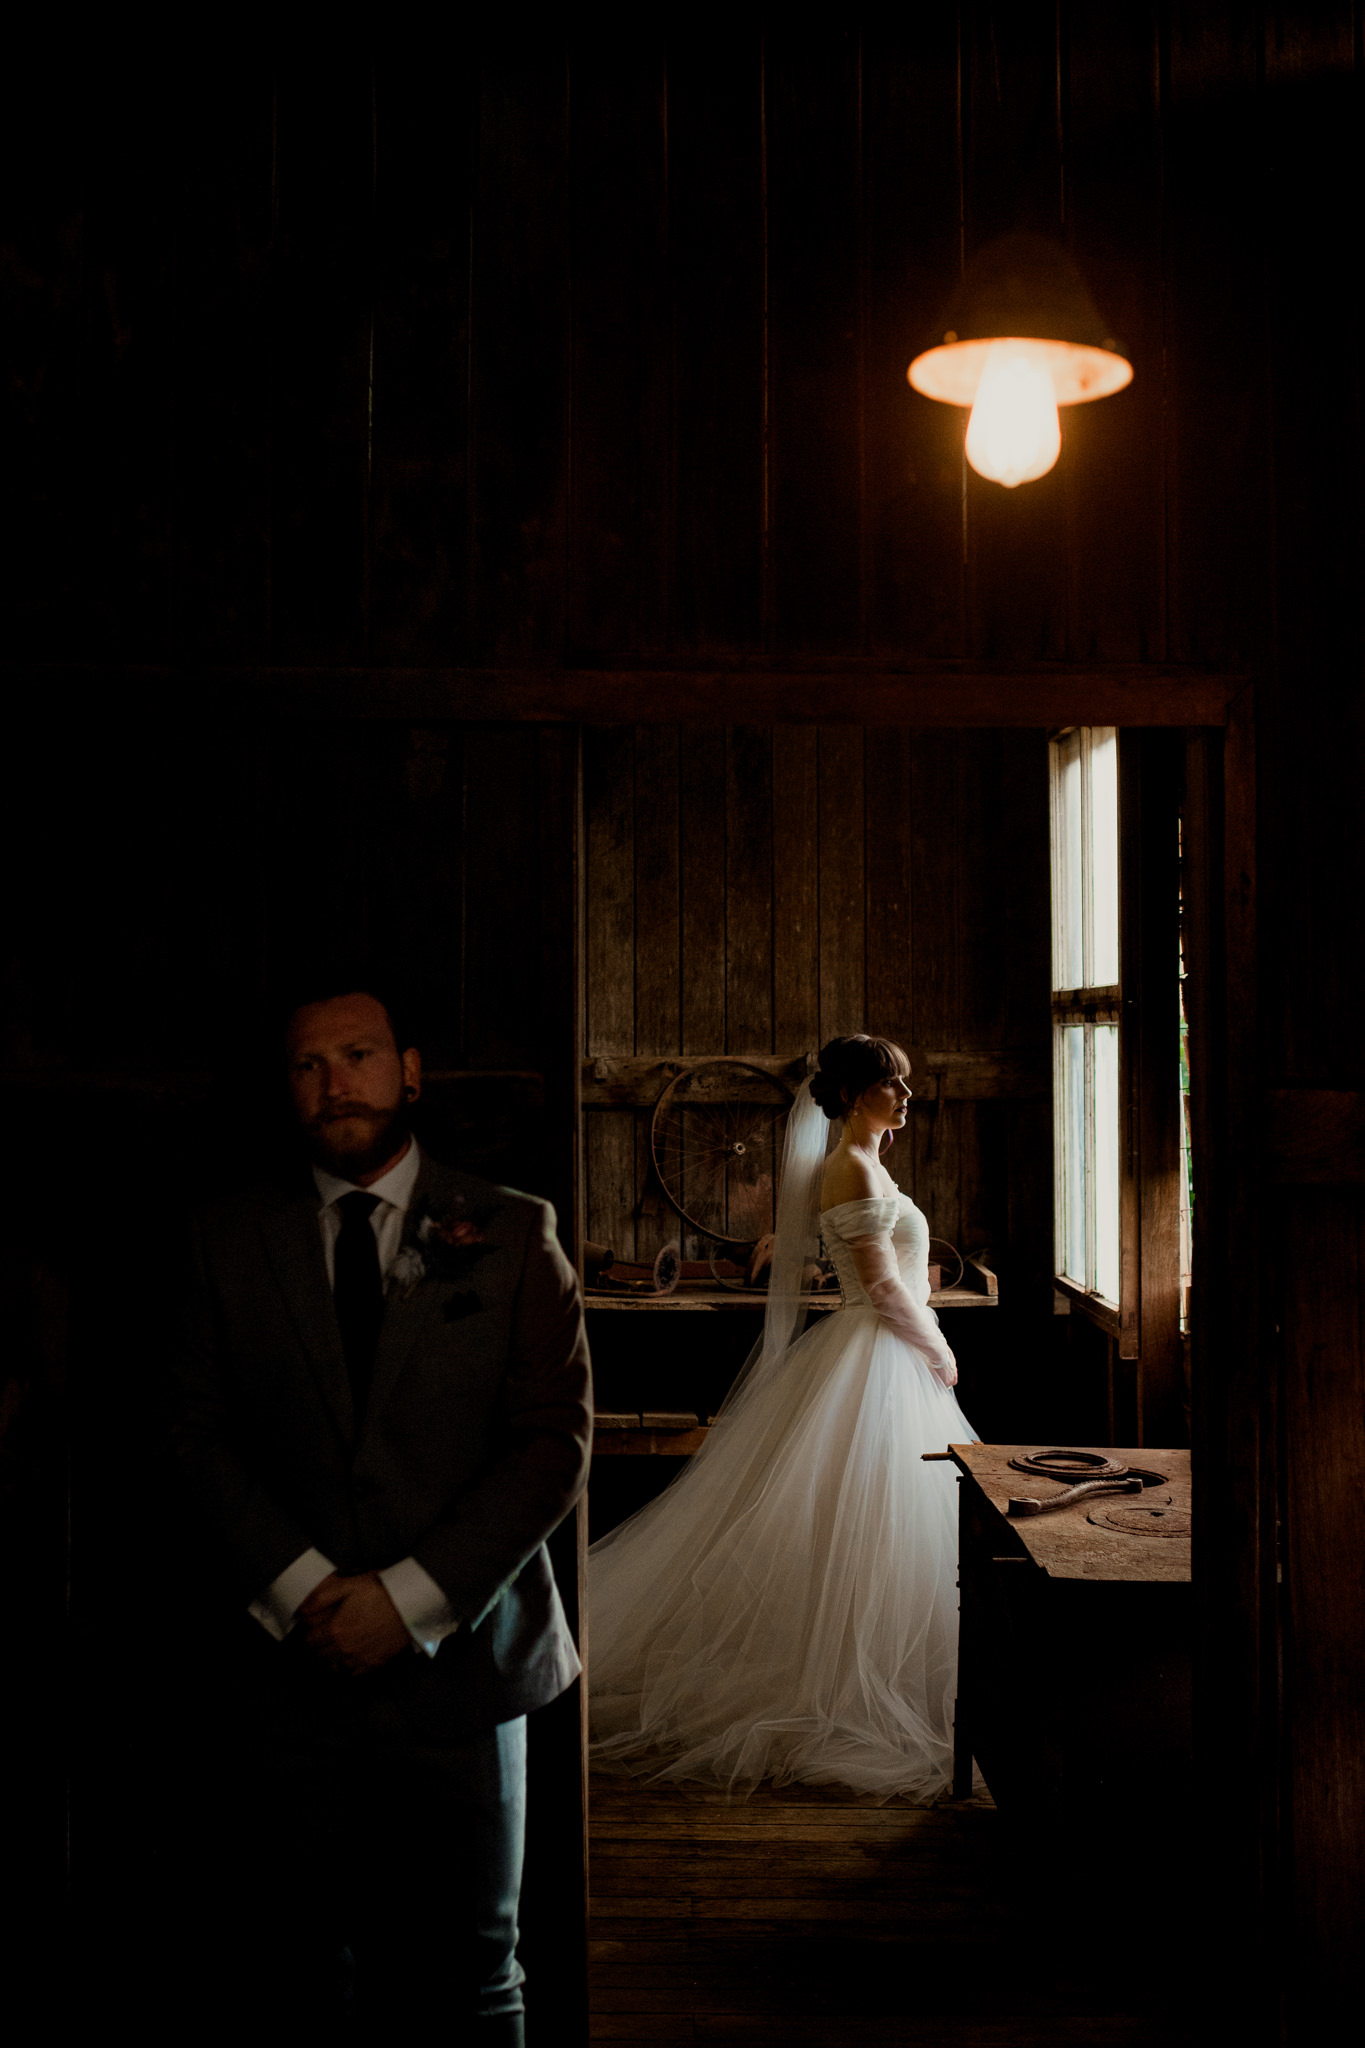 A groom waits patiently outside a room as his bride is illuminated by a windowsill